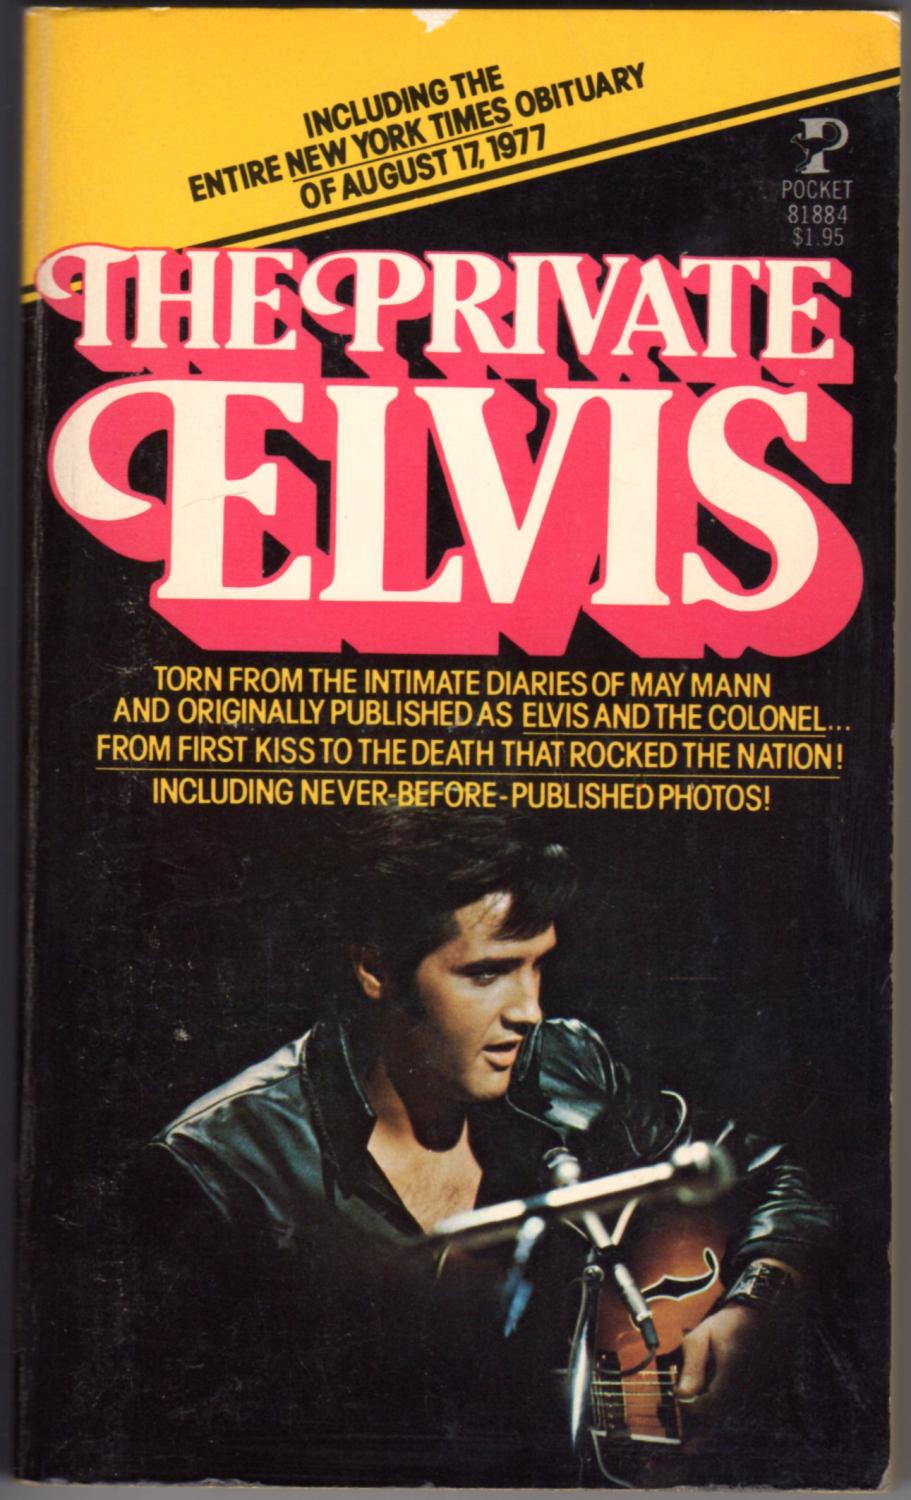 The Private Elvis (Including the entire New